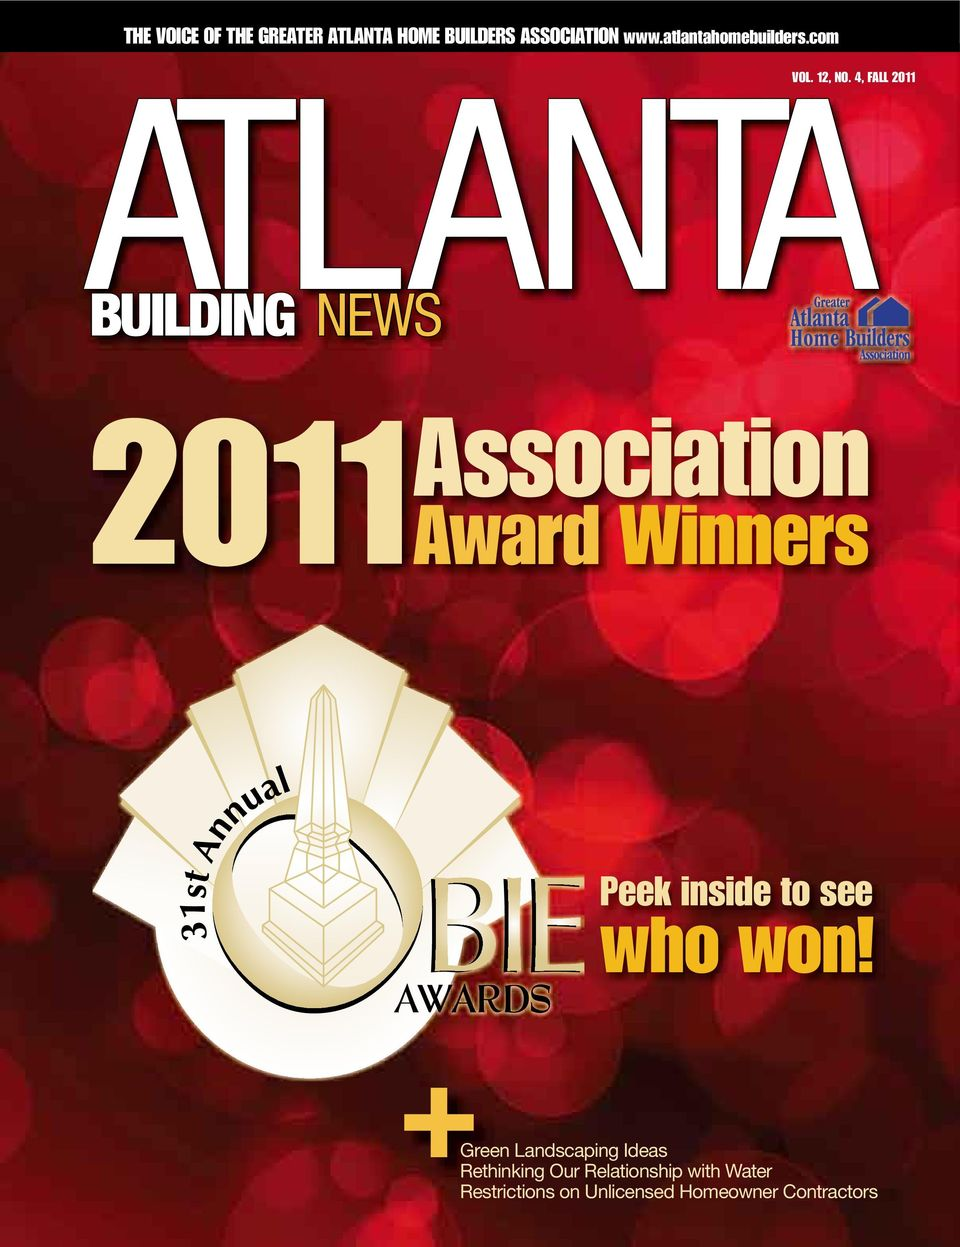 4, FALL 2011 2011 Association Award Winners Peek inside to see who won!